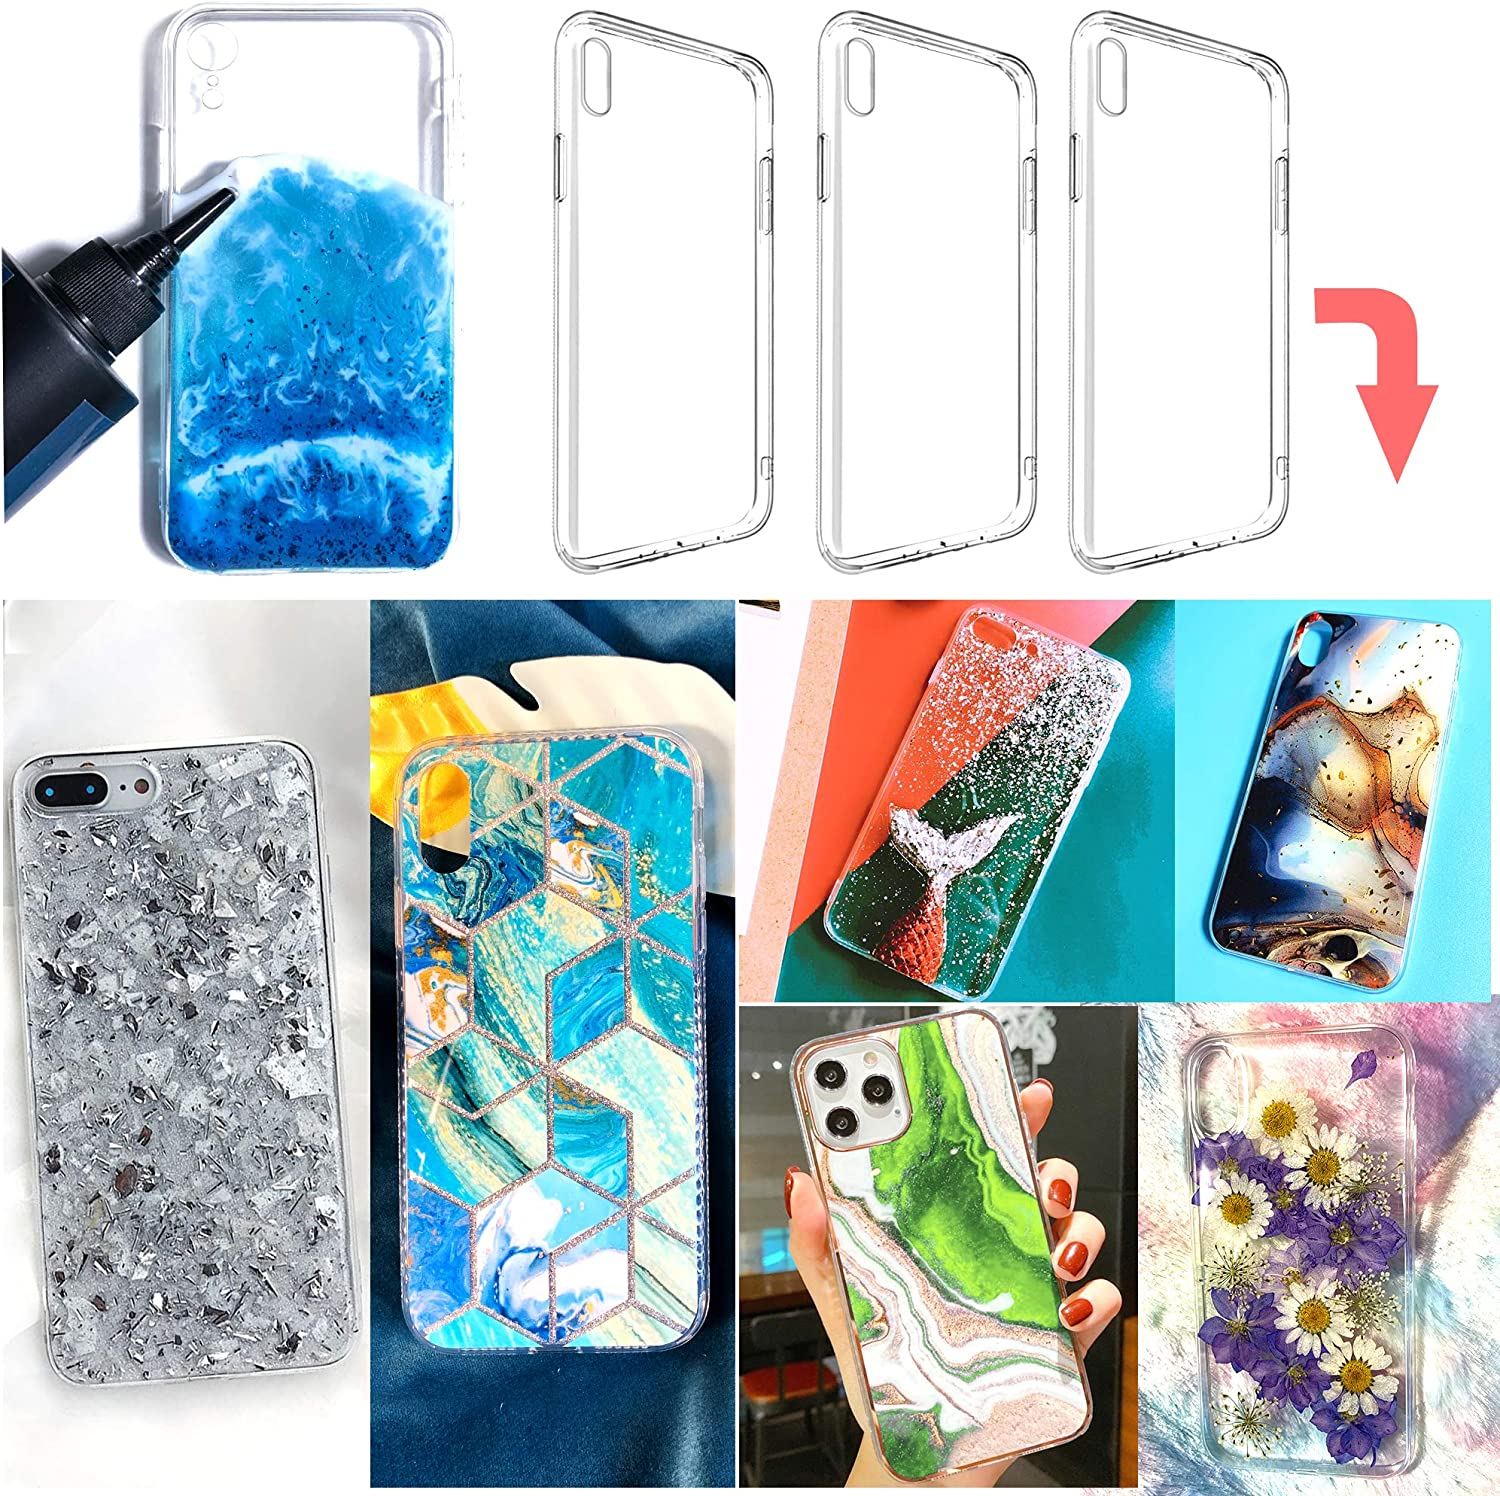 3 pcs epoxy Resin Personalized Mobile Phone case DIY Silicone case for iPhone X/Xs (Note:Product are not Resin Mold, They are 2 pcs Bumper Soft and 1 pcs Hard Phone case with Special Groove Design)